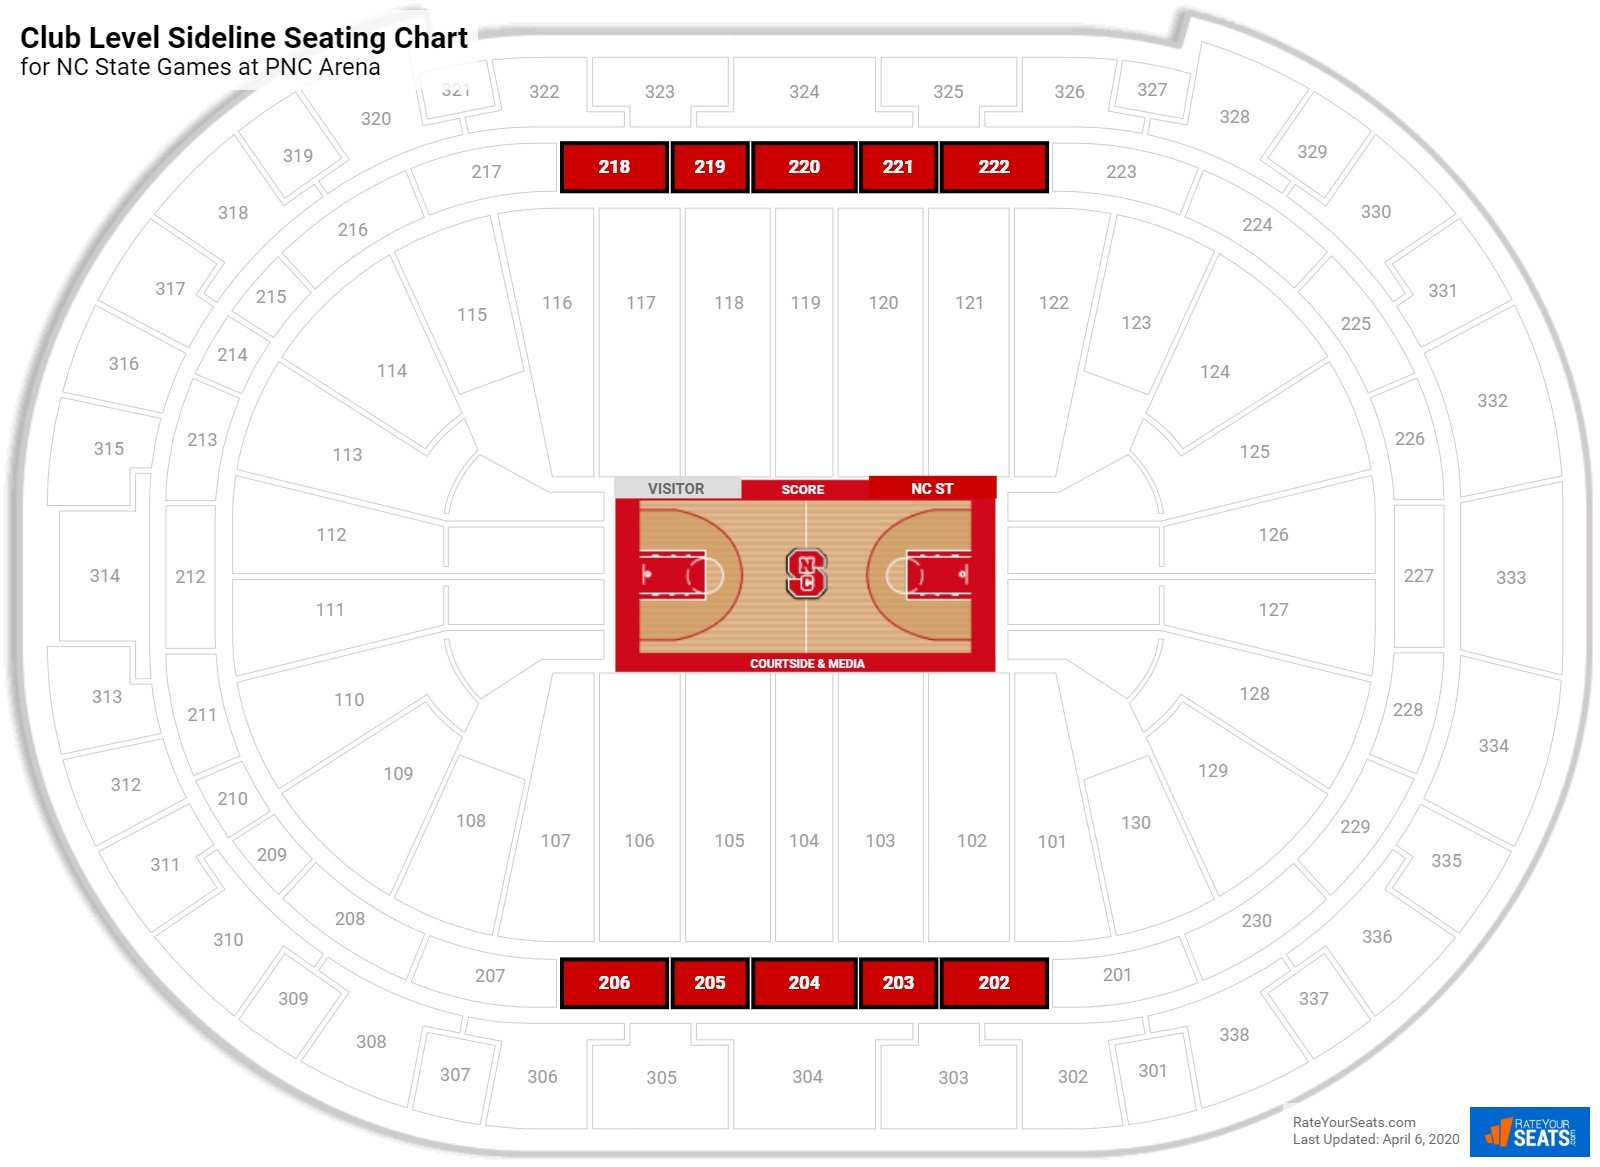 PNC Arena Club Level Side seating chart